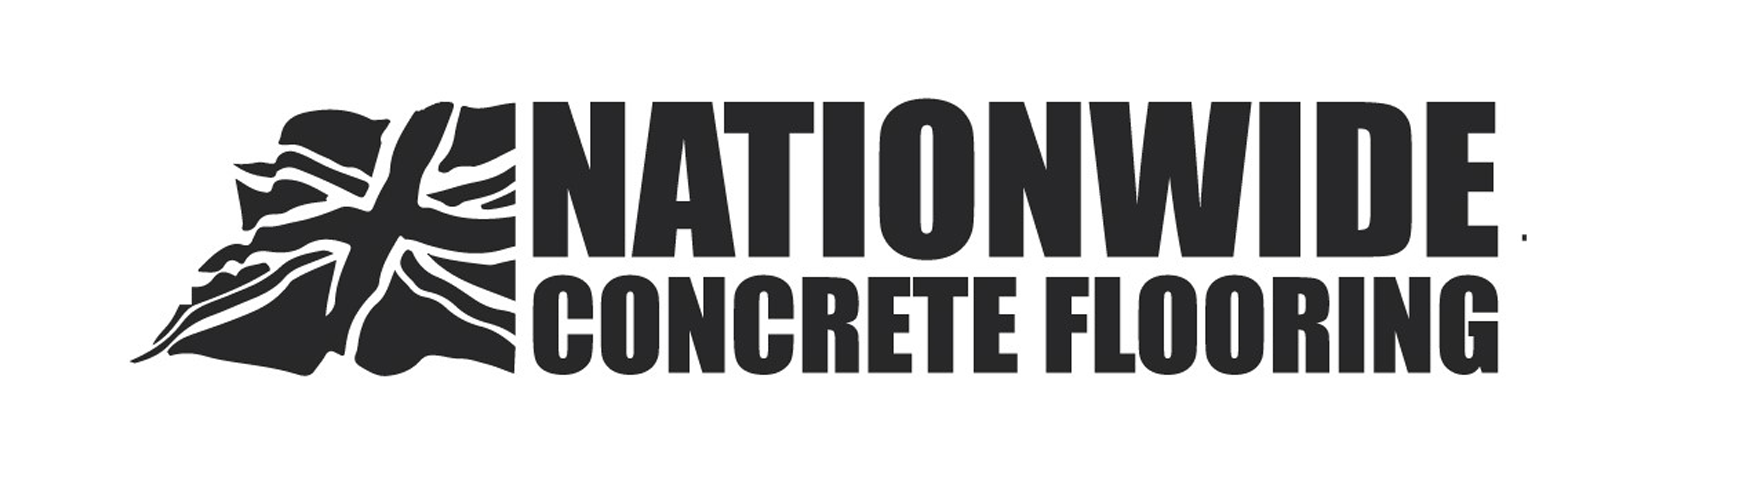 Nationwide Concrete Flooring